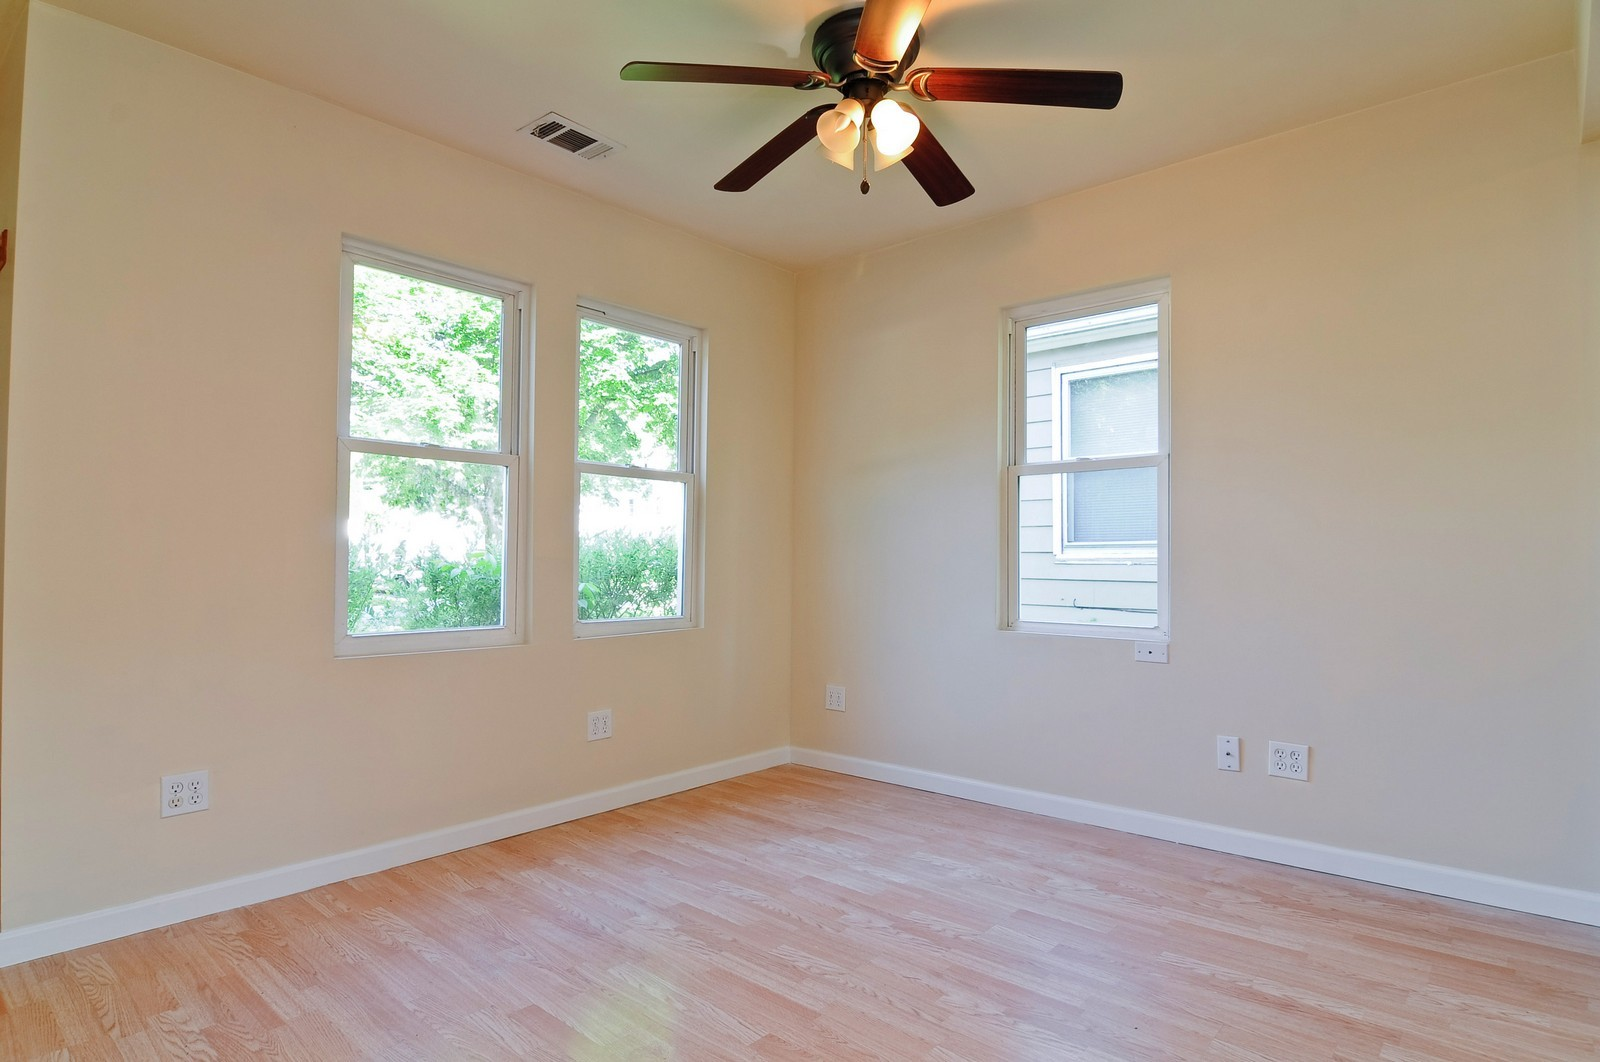 Real Estate Photography - 321 N Bellevue, Round Lake Park, IL, 60073 - Living Room